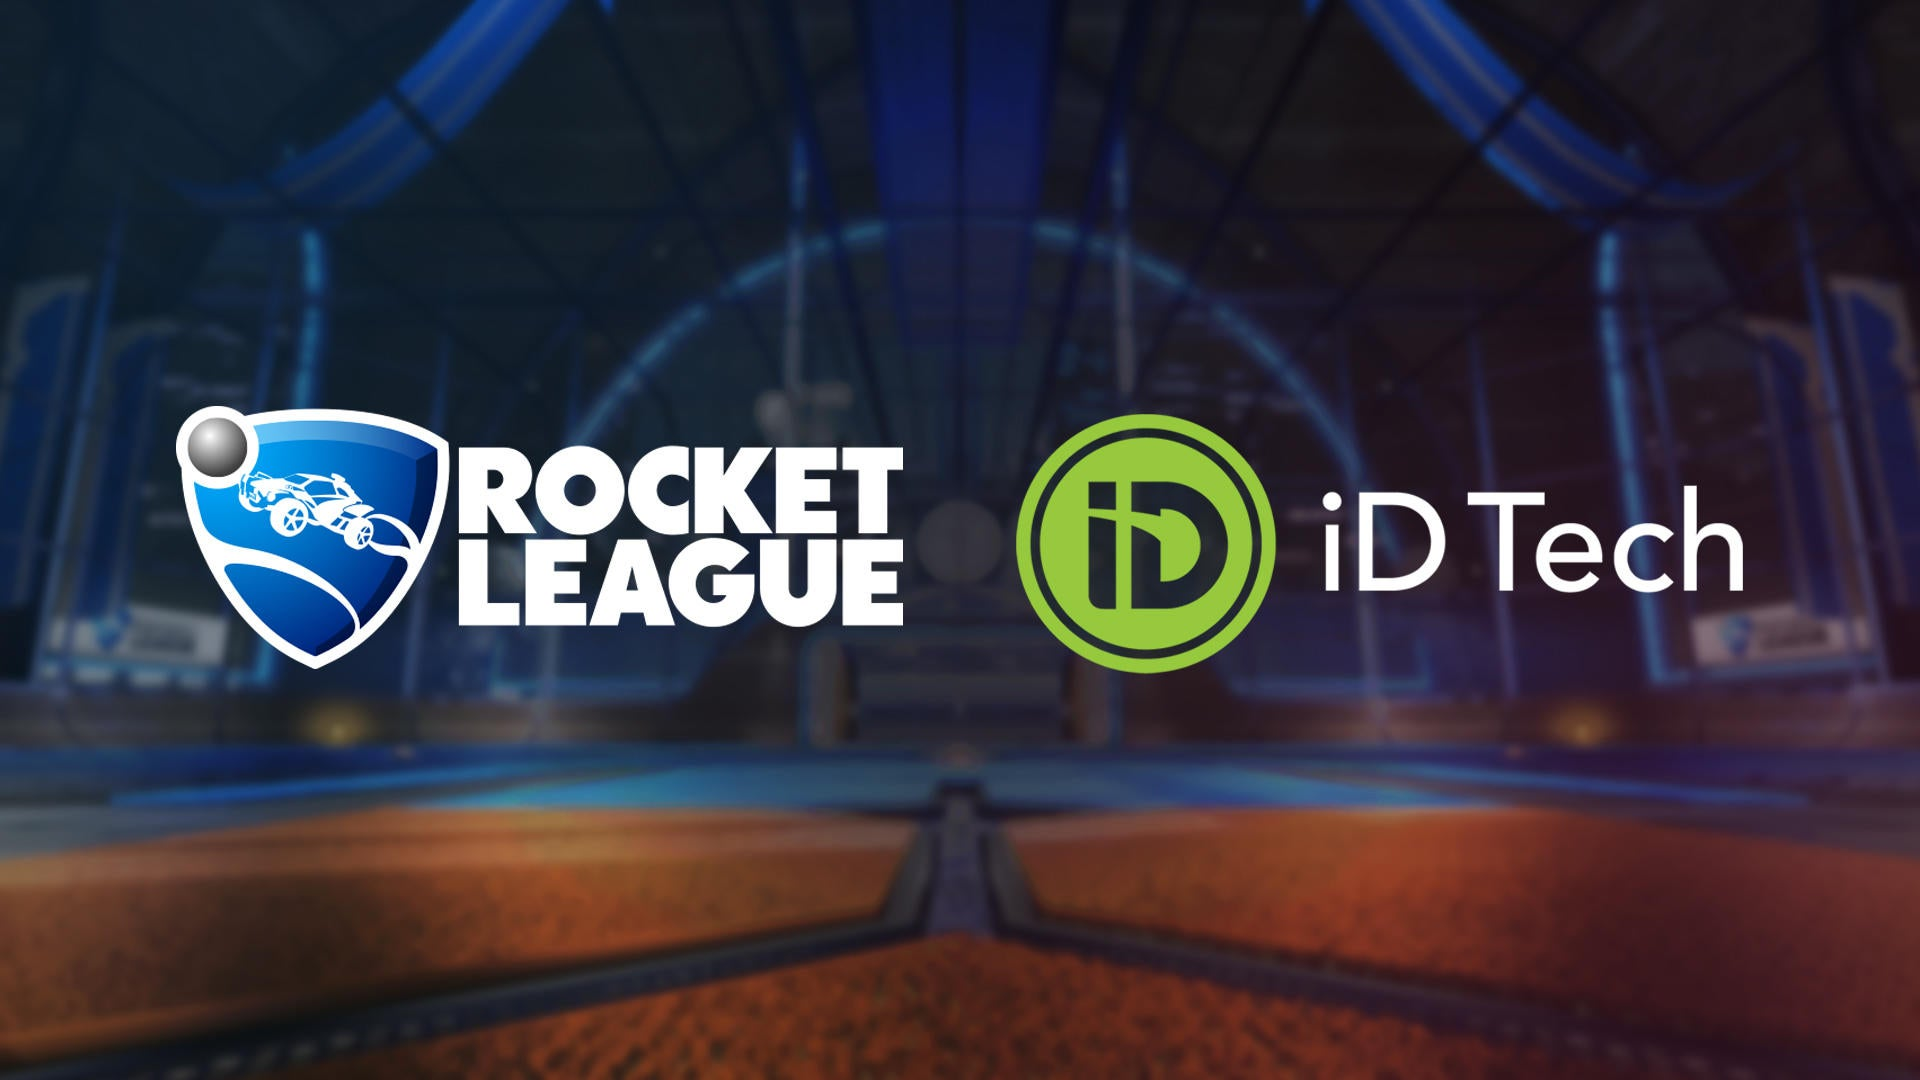 Rocket League Joins iD Tech's Summer Camp Program Image